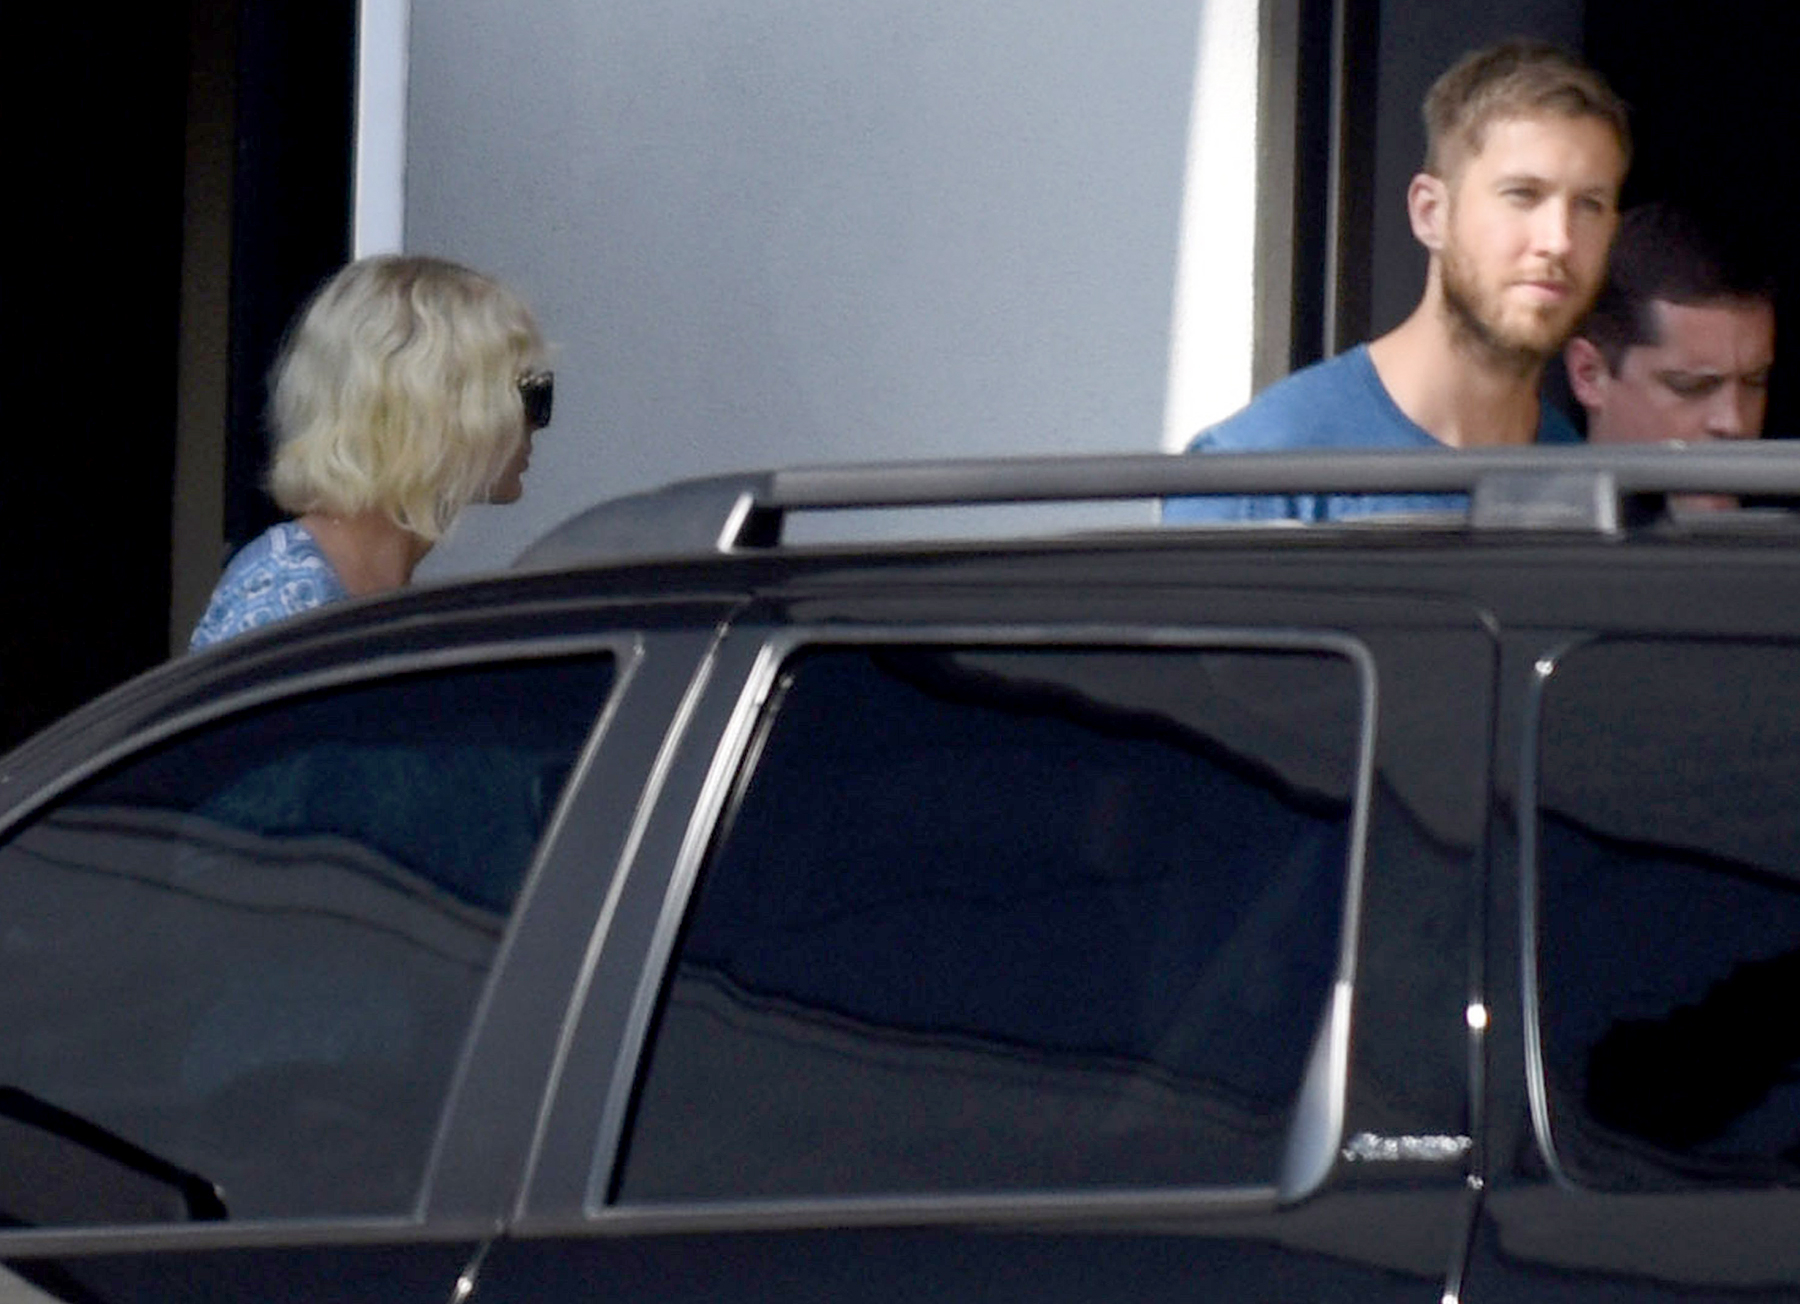 Taylor Swift and Calvin Harris arrive back in Los Angeles via private jet, after a romantic getaway in the Caribbean. The pair were seen embracing before heading their separate ways.